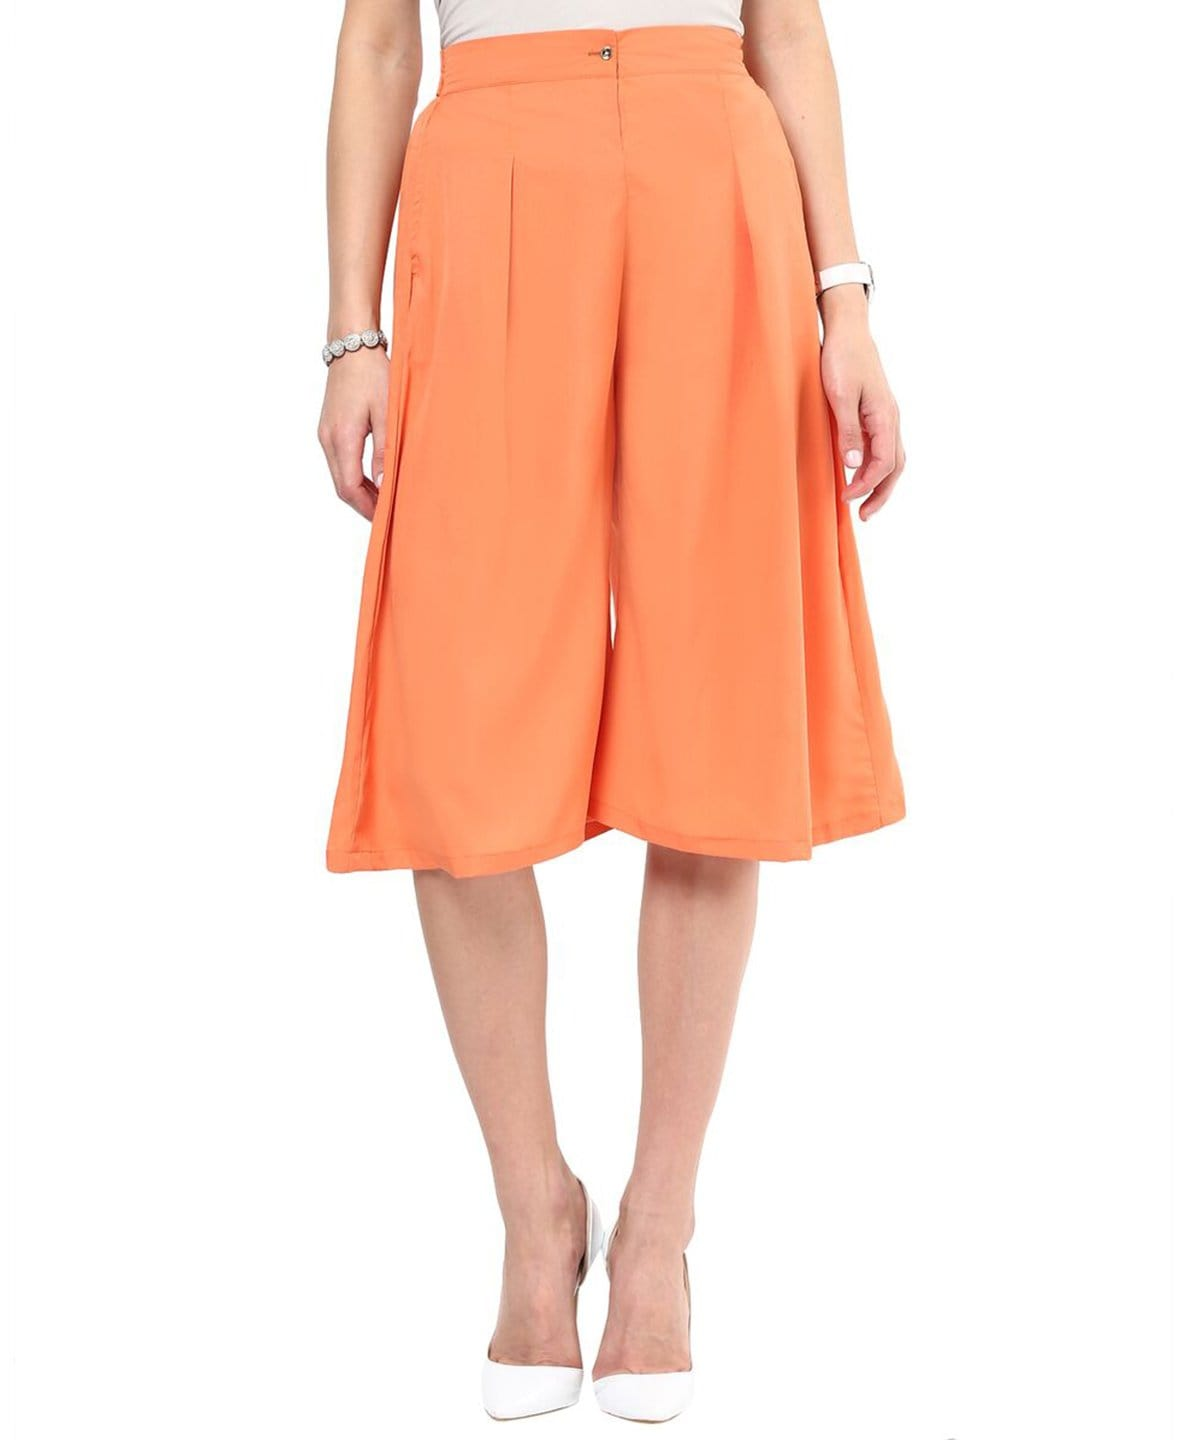 Uptownie Orange Adjustable Culottes 1 Clearance Sale